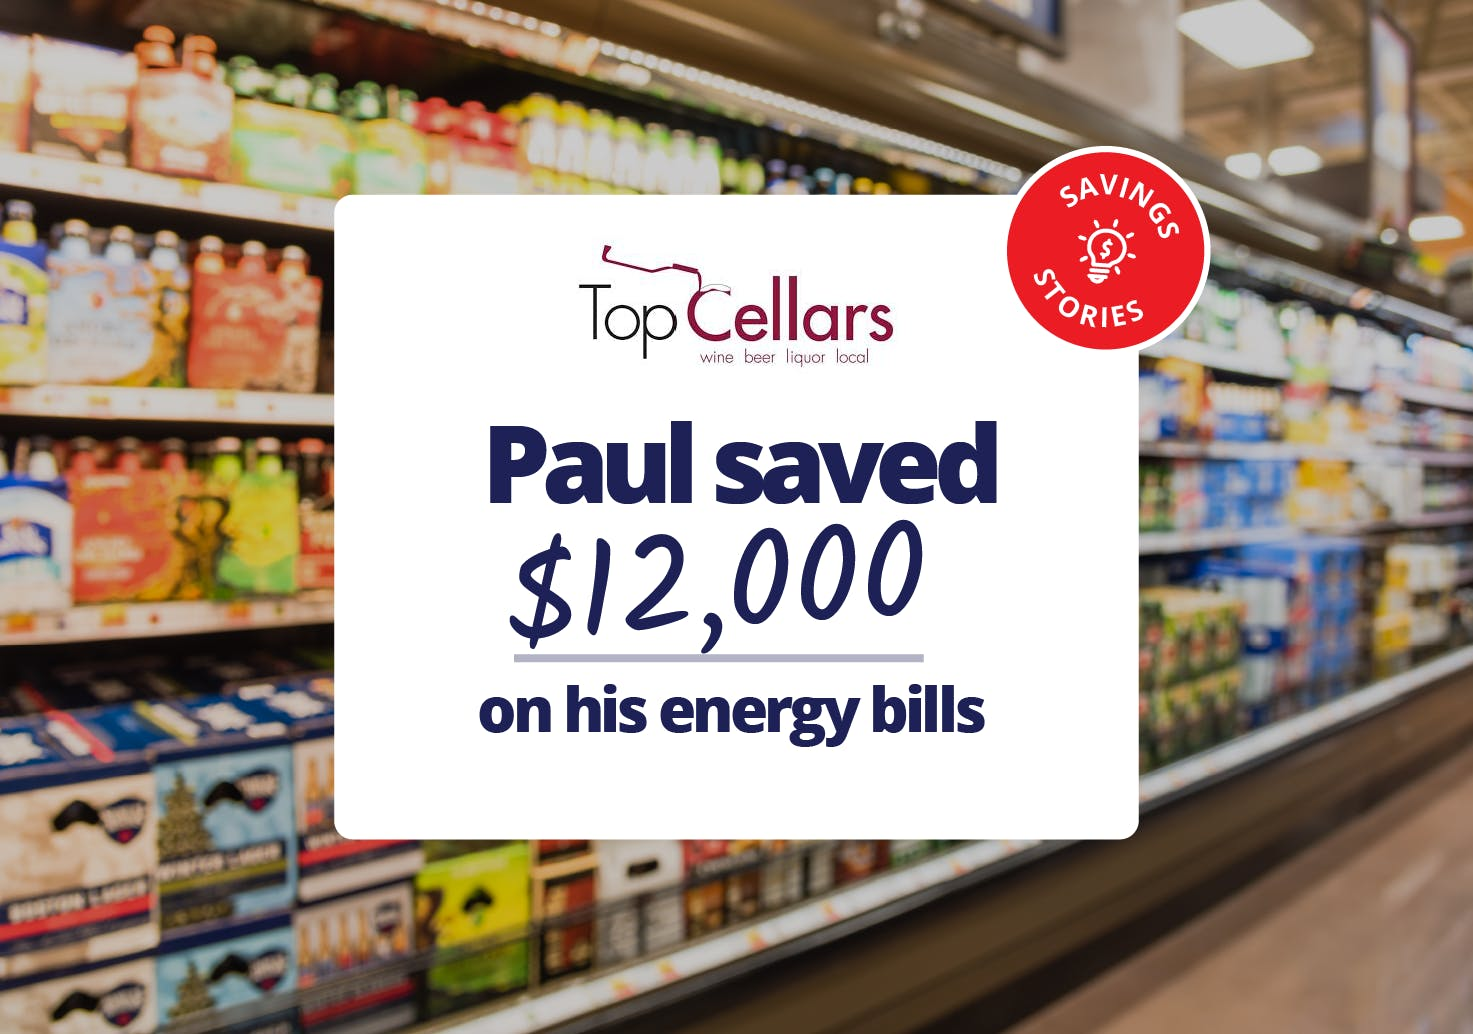 Paul saved $12,000 on his energy bills